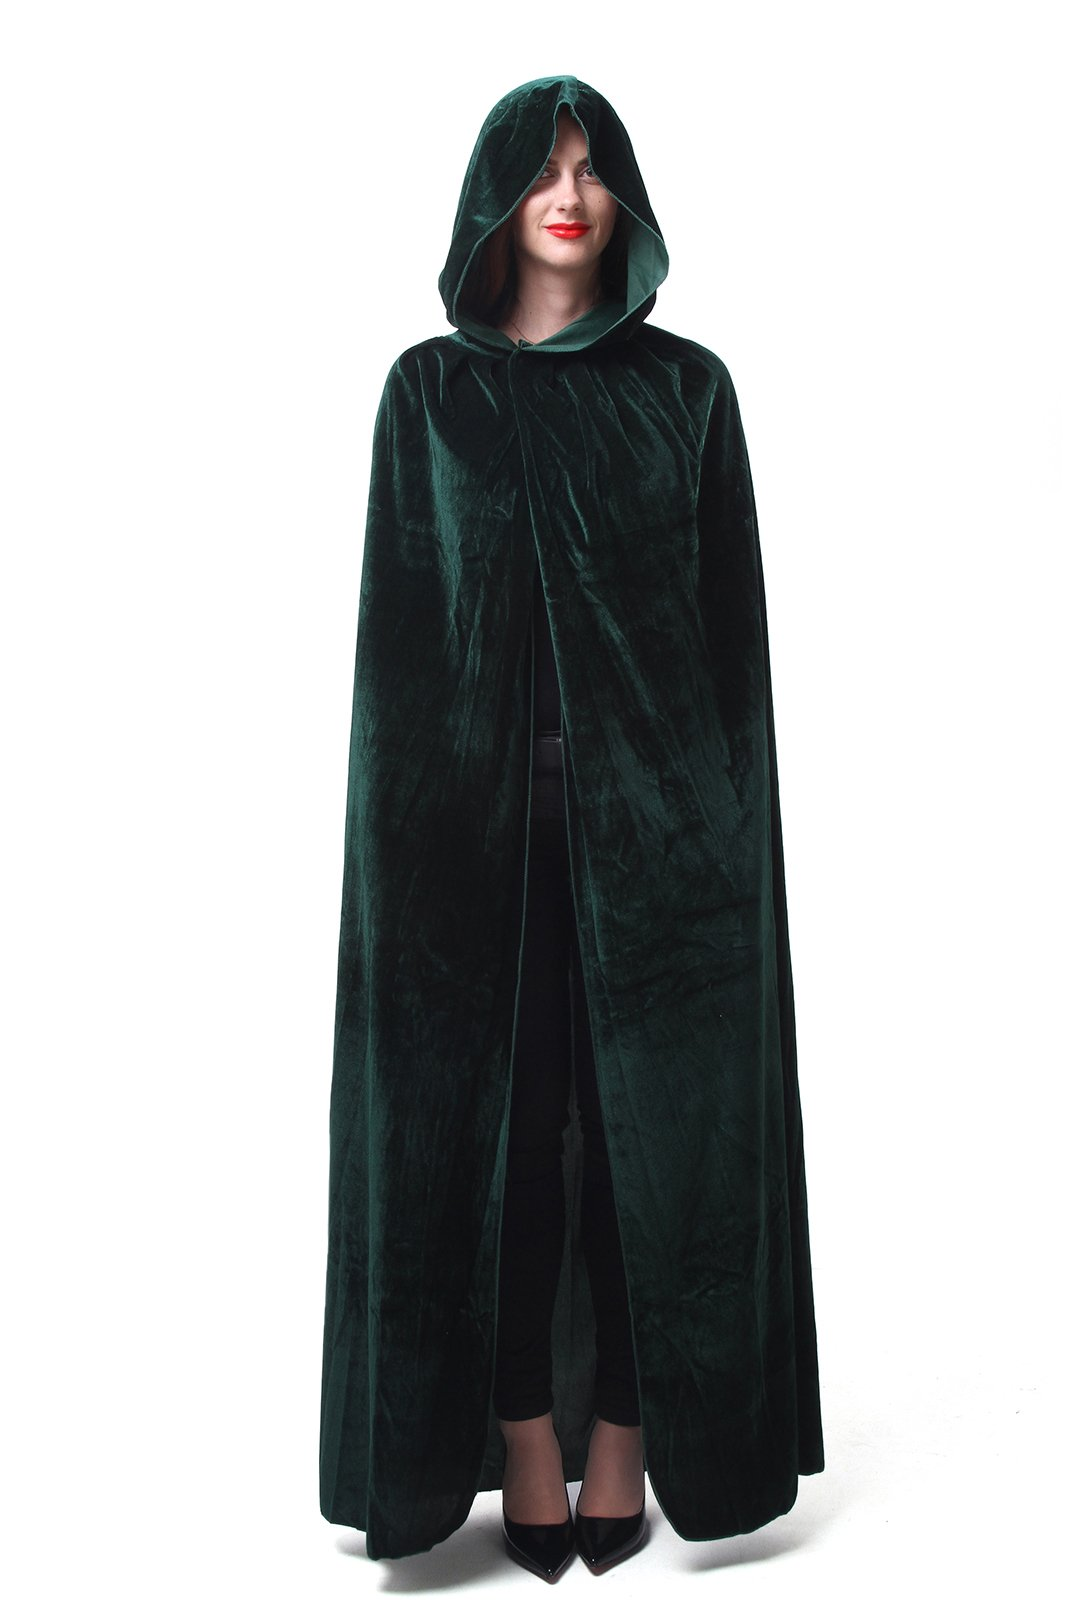 Nuoqi Mens Halloween Costumes Unisex Adults Cosplay Green Cape Cosplay Costumes by Nuoqi (Image #1)